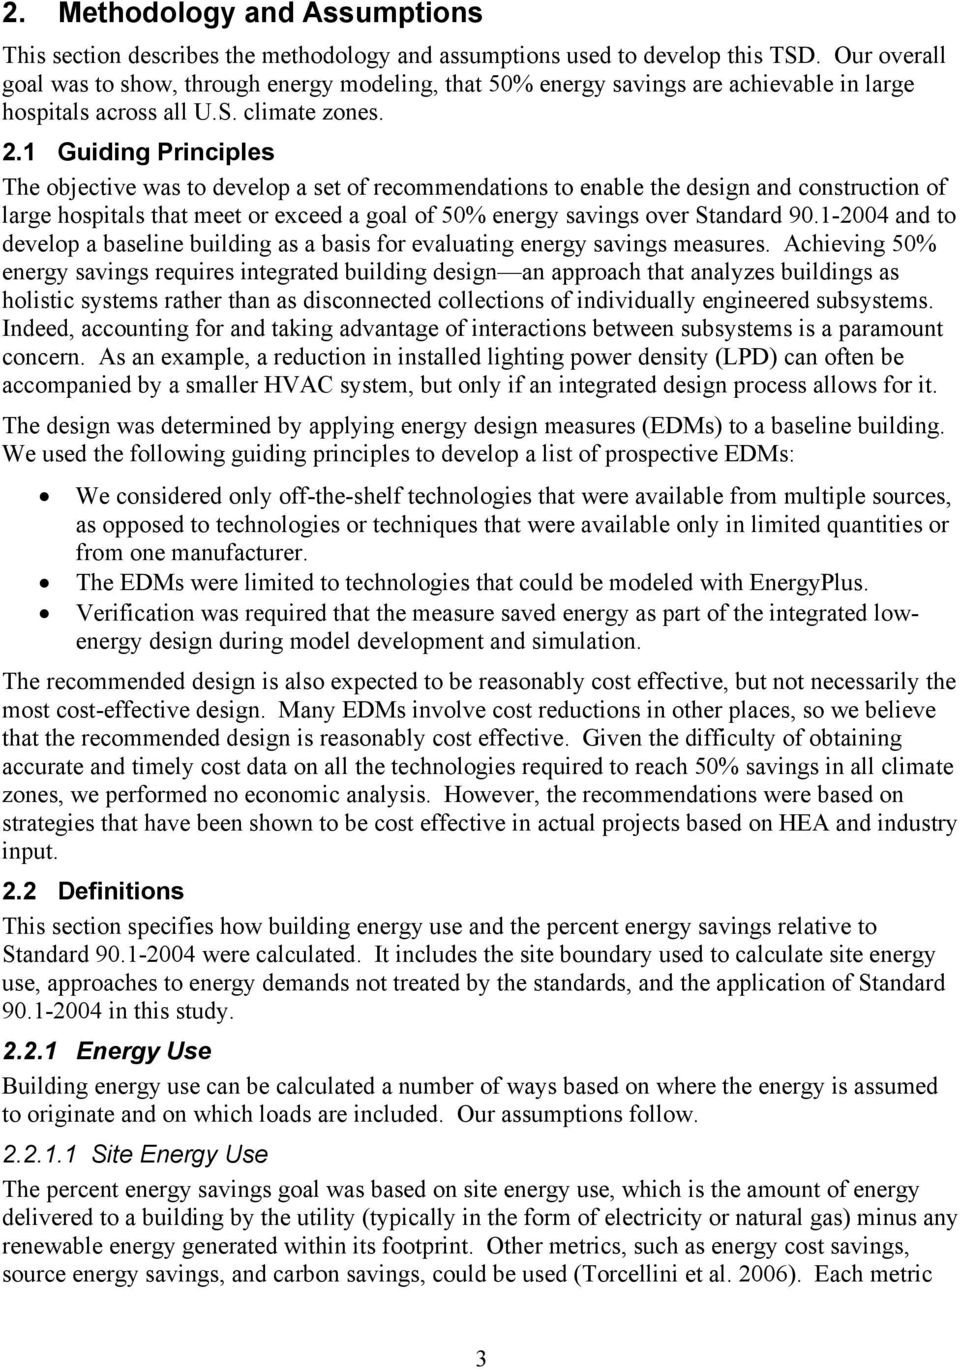 1 Guiding Principles The objective was to develop a set of recommendations to enable the design and construction of large hospitals that meet or exceed a goal of 50% energy savings over Standard 90.